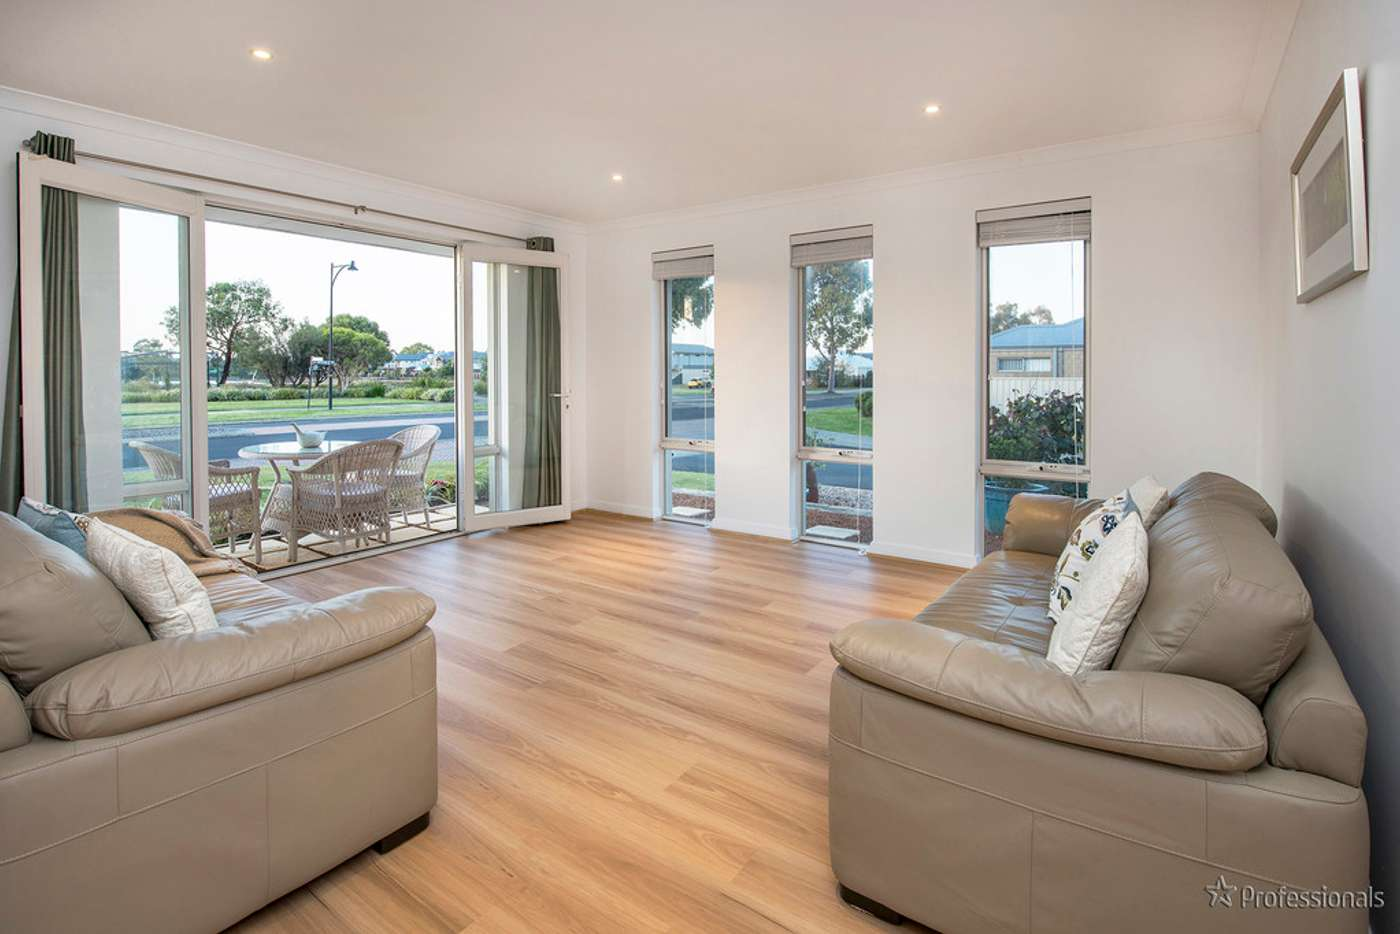 Sixth view of Homely house listing, 12 St Michaels Parkway, Dunsborough WA 6281